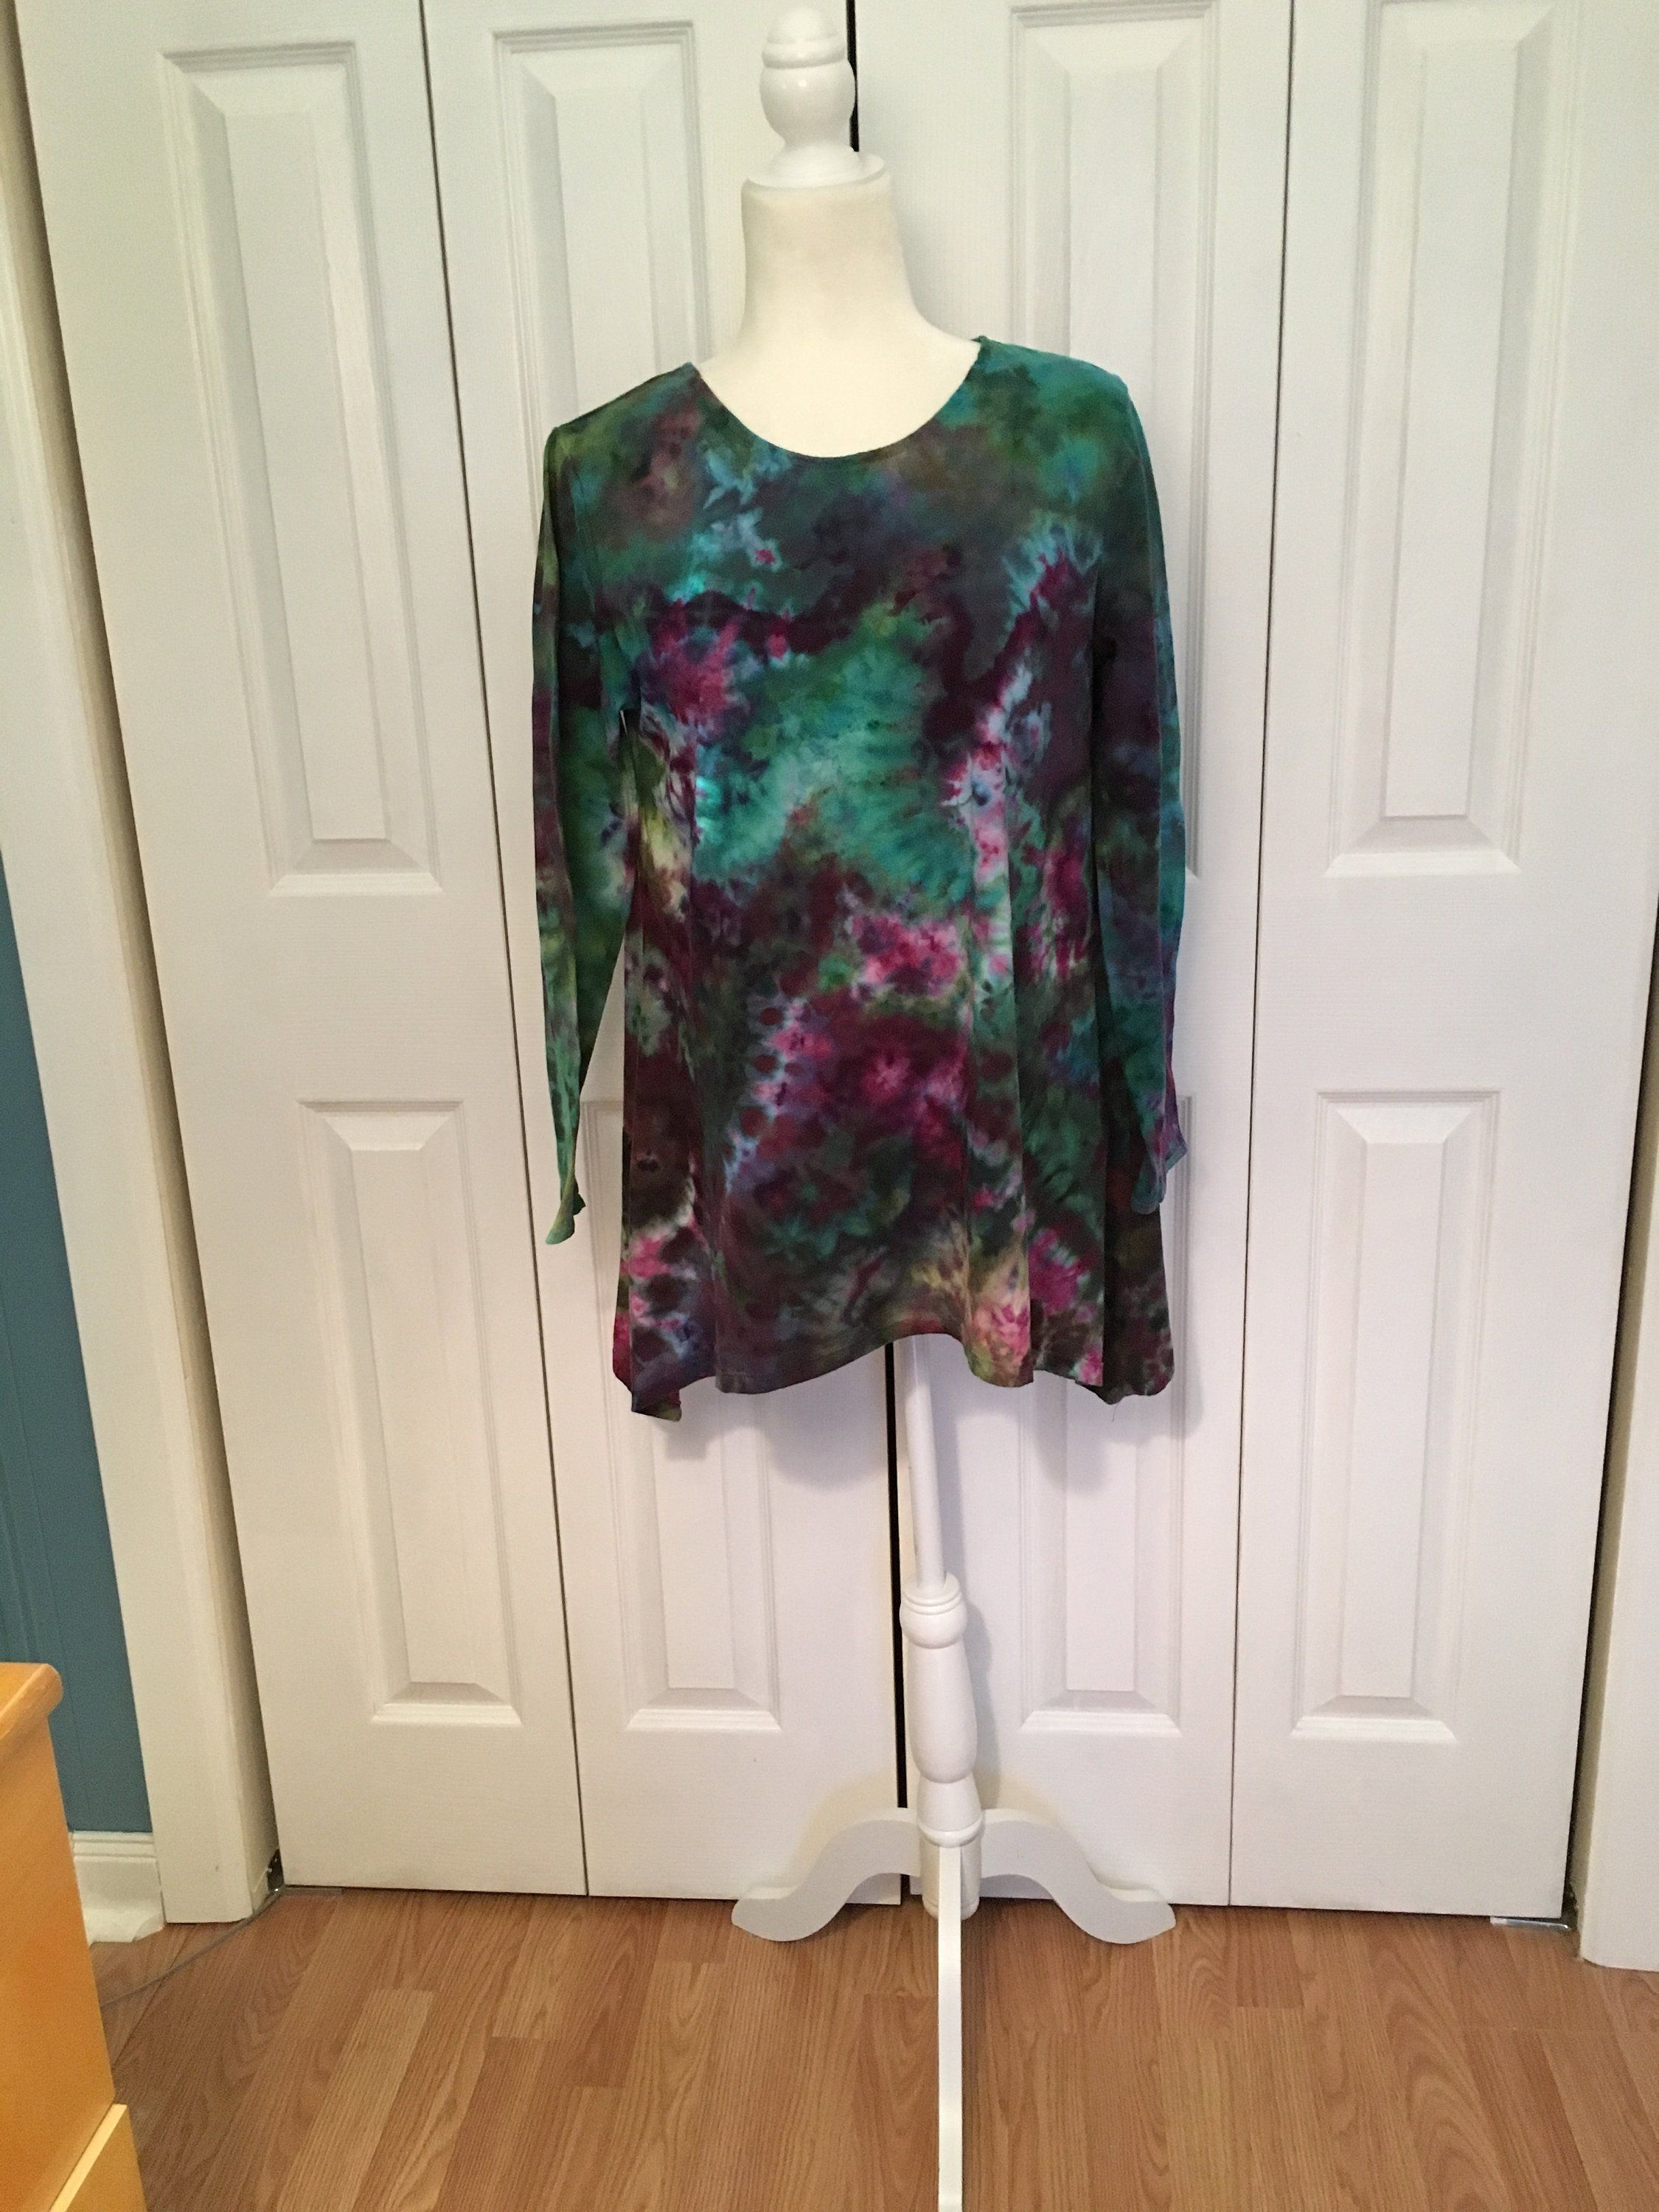 long sleeve top ice dyed in blue and black geode design in U.S Women/'s Tunic Top Women/'s  S M L XL 2X 3X Plus Sizes